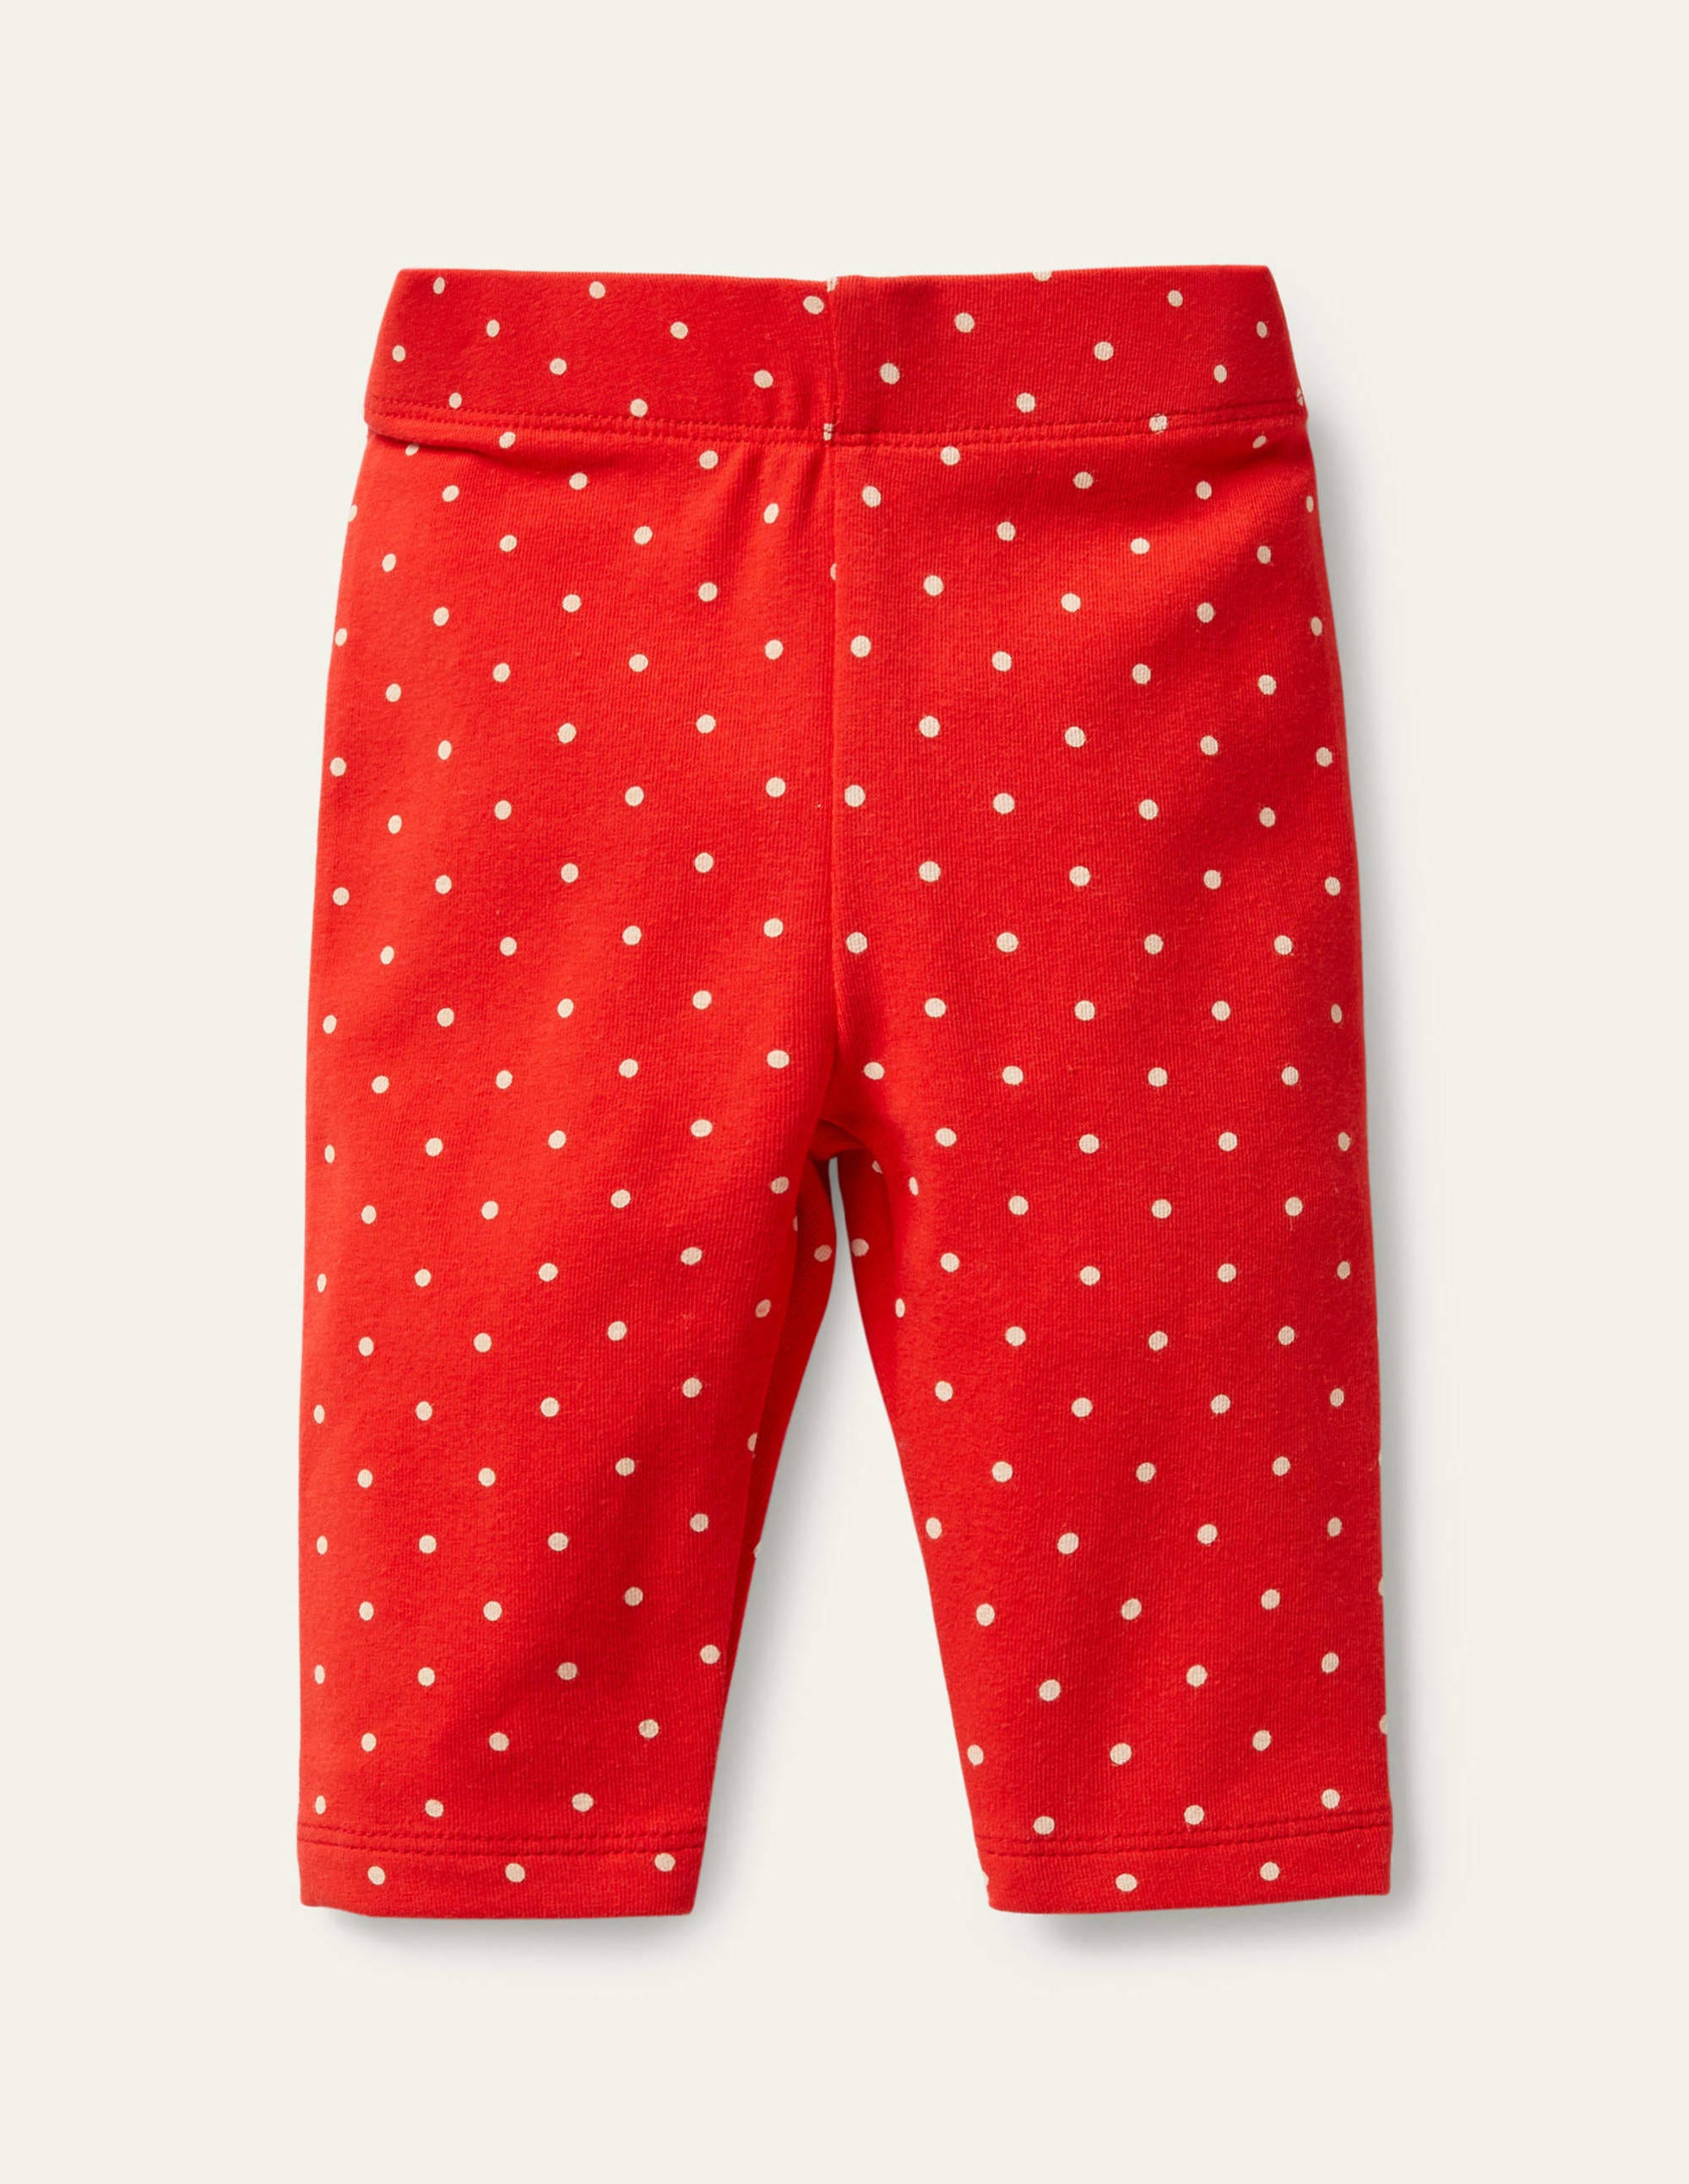 Boden Printed Leggings - Strawberry Tart Pin Spot